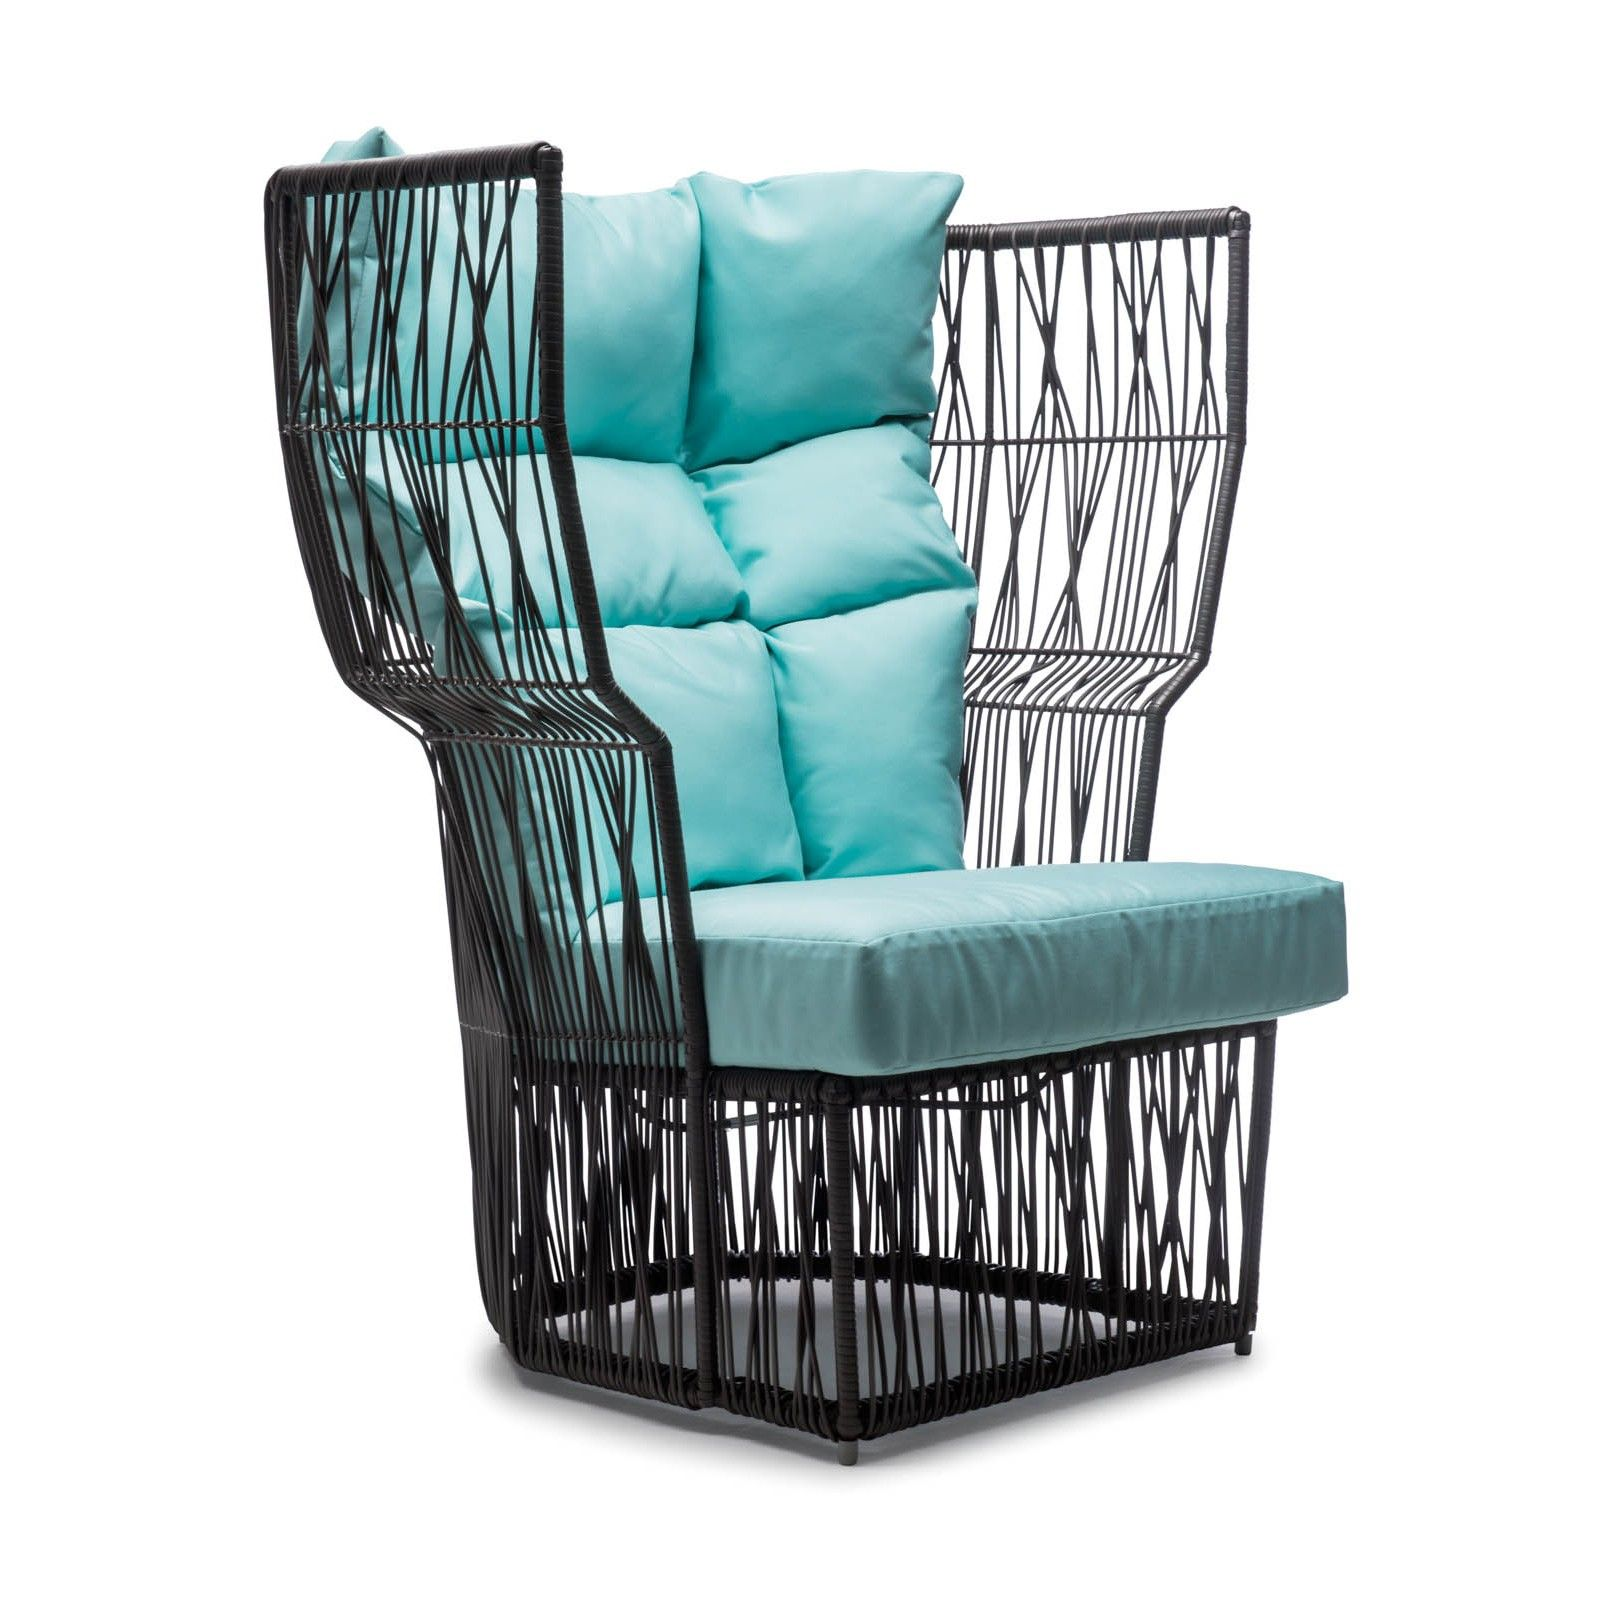 Wondrous Lounge Ke Zu Furniture Residential And Contract Ibusinesslaw Wood Chair Design Ideas Ibusinesslaworg